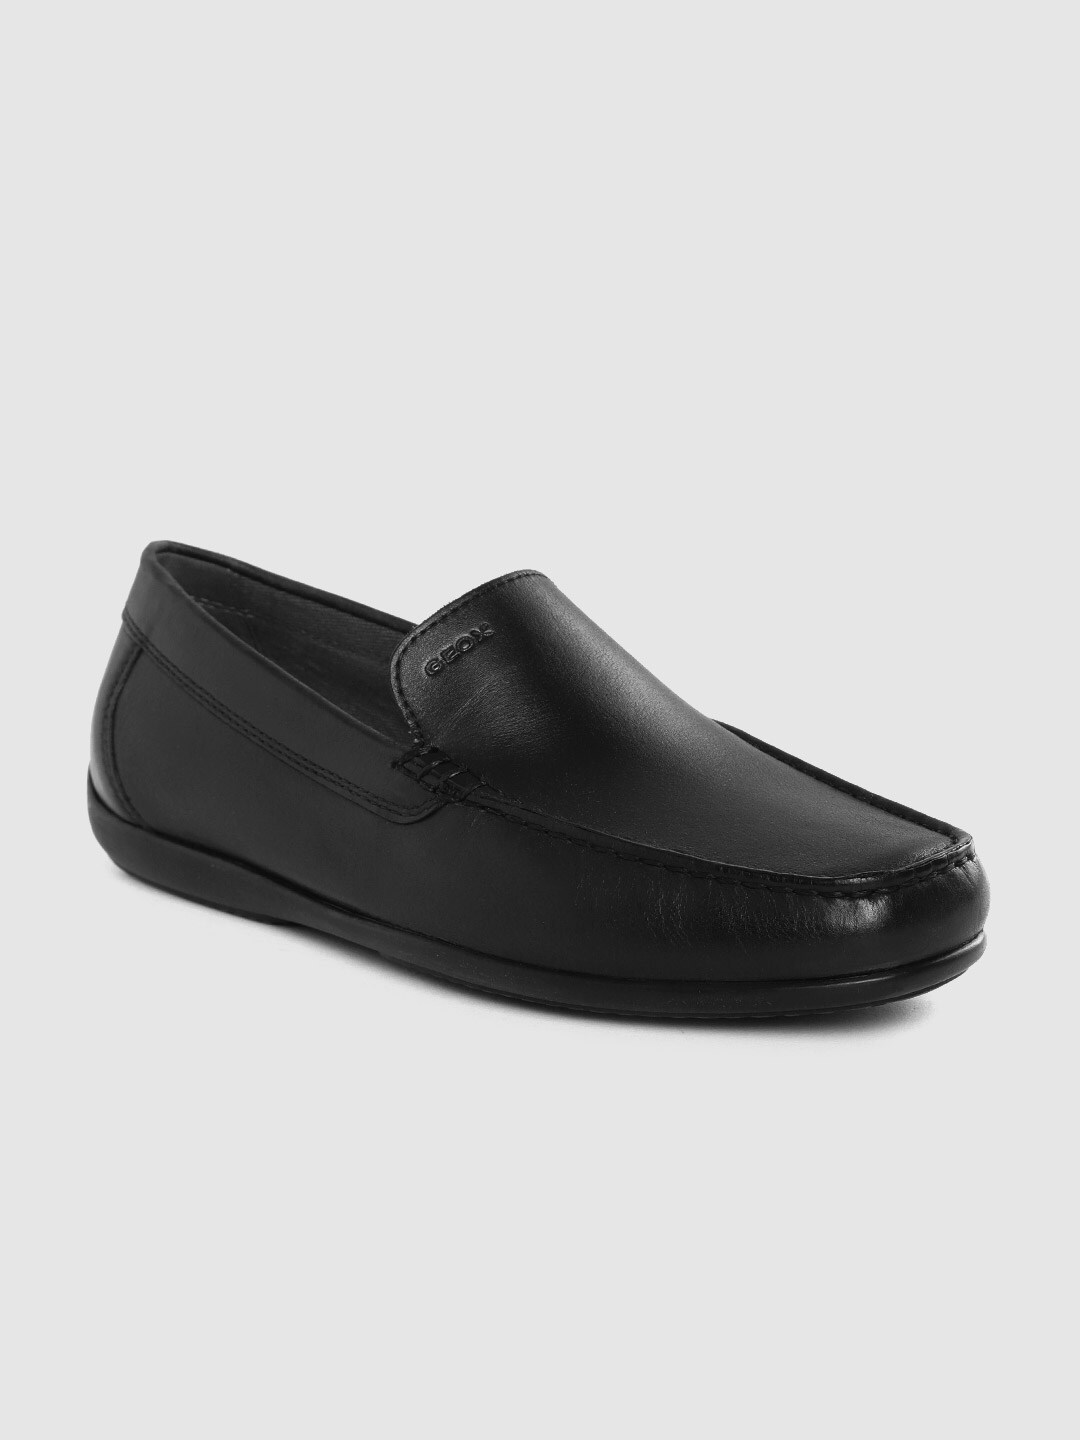 Geox Men Black Solid Leather Formal Driving Shoes